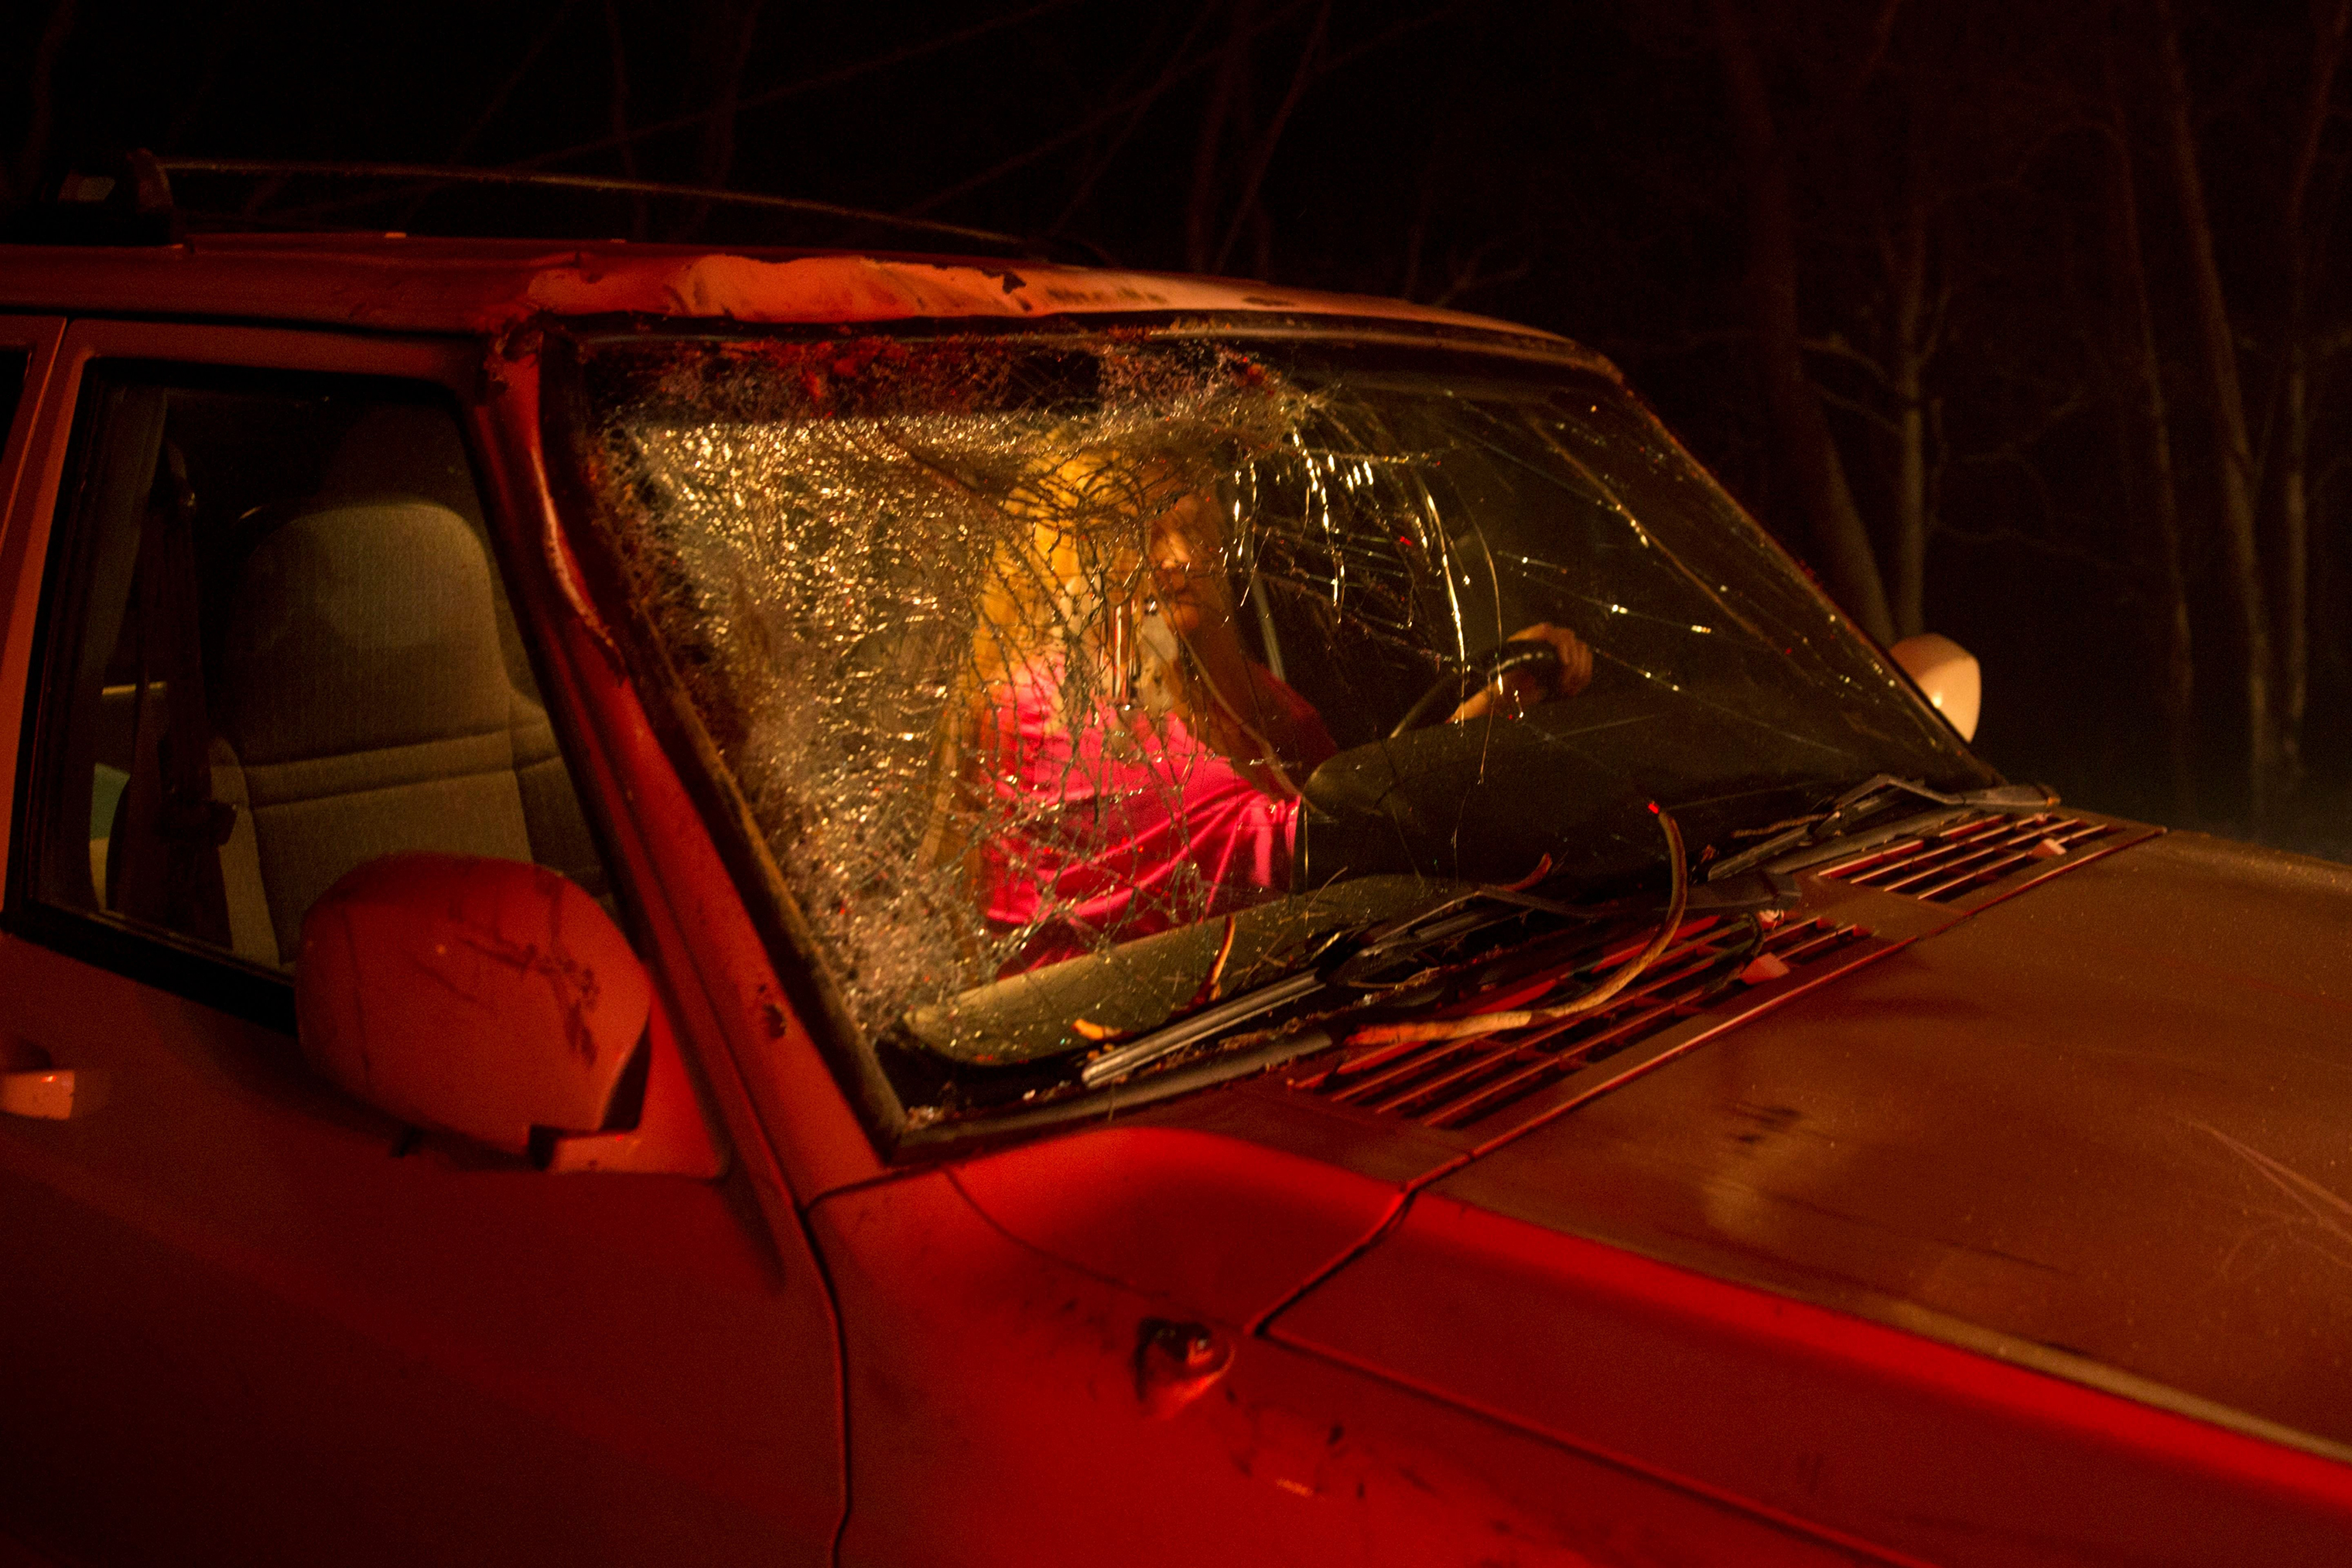 The unidentified driver who narrowly survived after a large tree fell on to the road and cracked the windshield during the Camp Fire, as it burned out of control through Paradise, Calif. on Nov. 8.